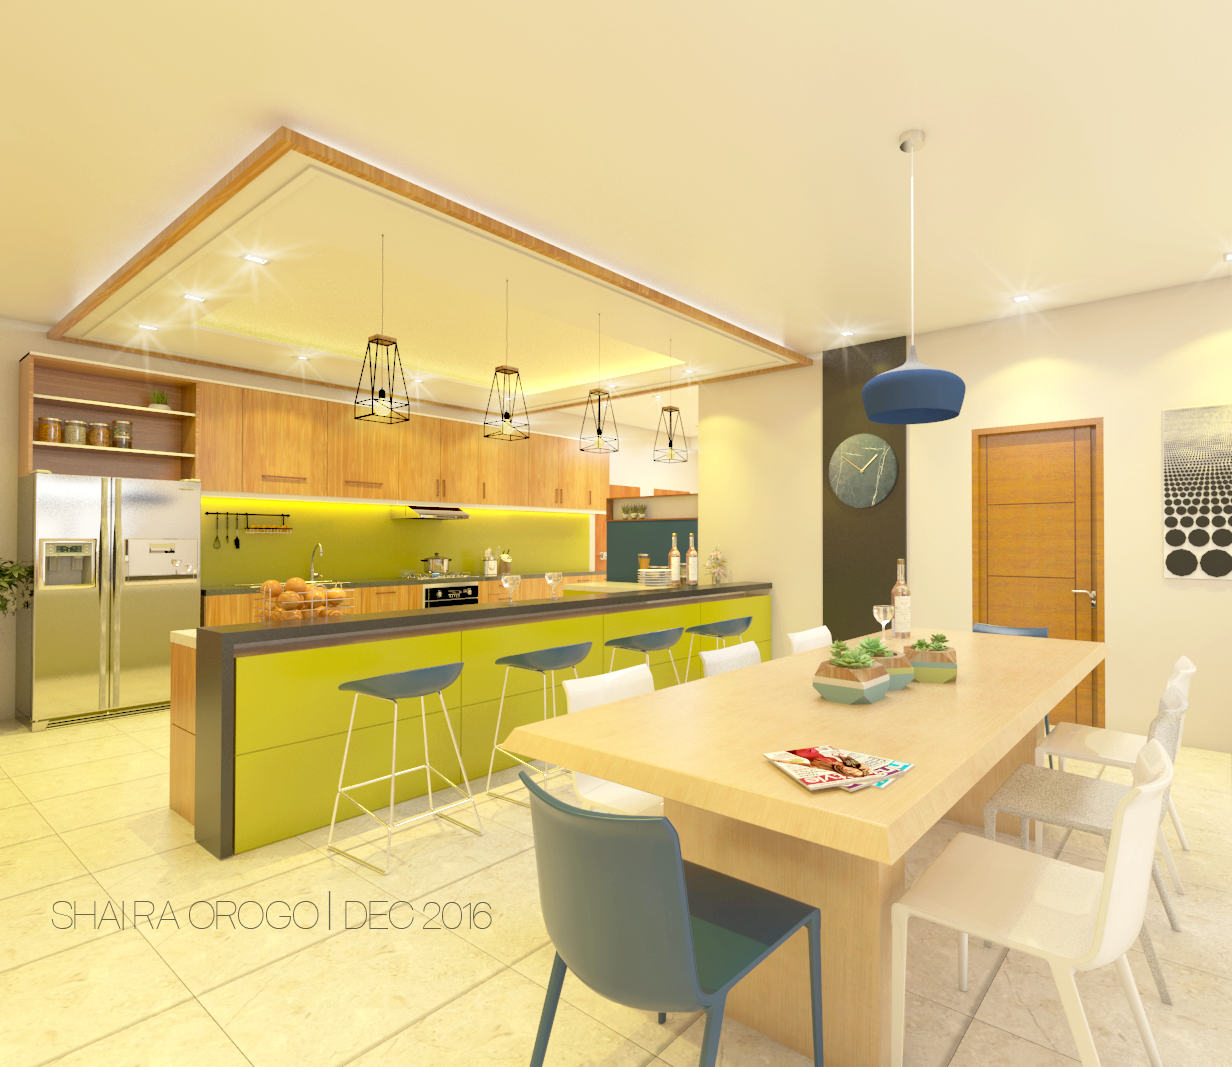 KitchenDining Interior Four Storey House Navotas Philippines Sketchup Vray Kitchen DiningPhilippinesKitchensPhotoshopInterior DesignInteriorsHouse